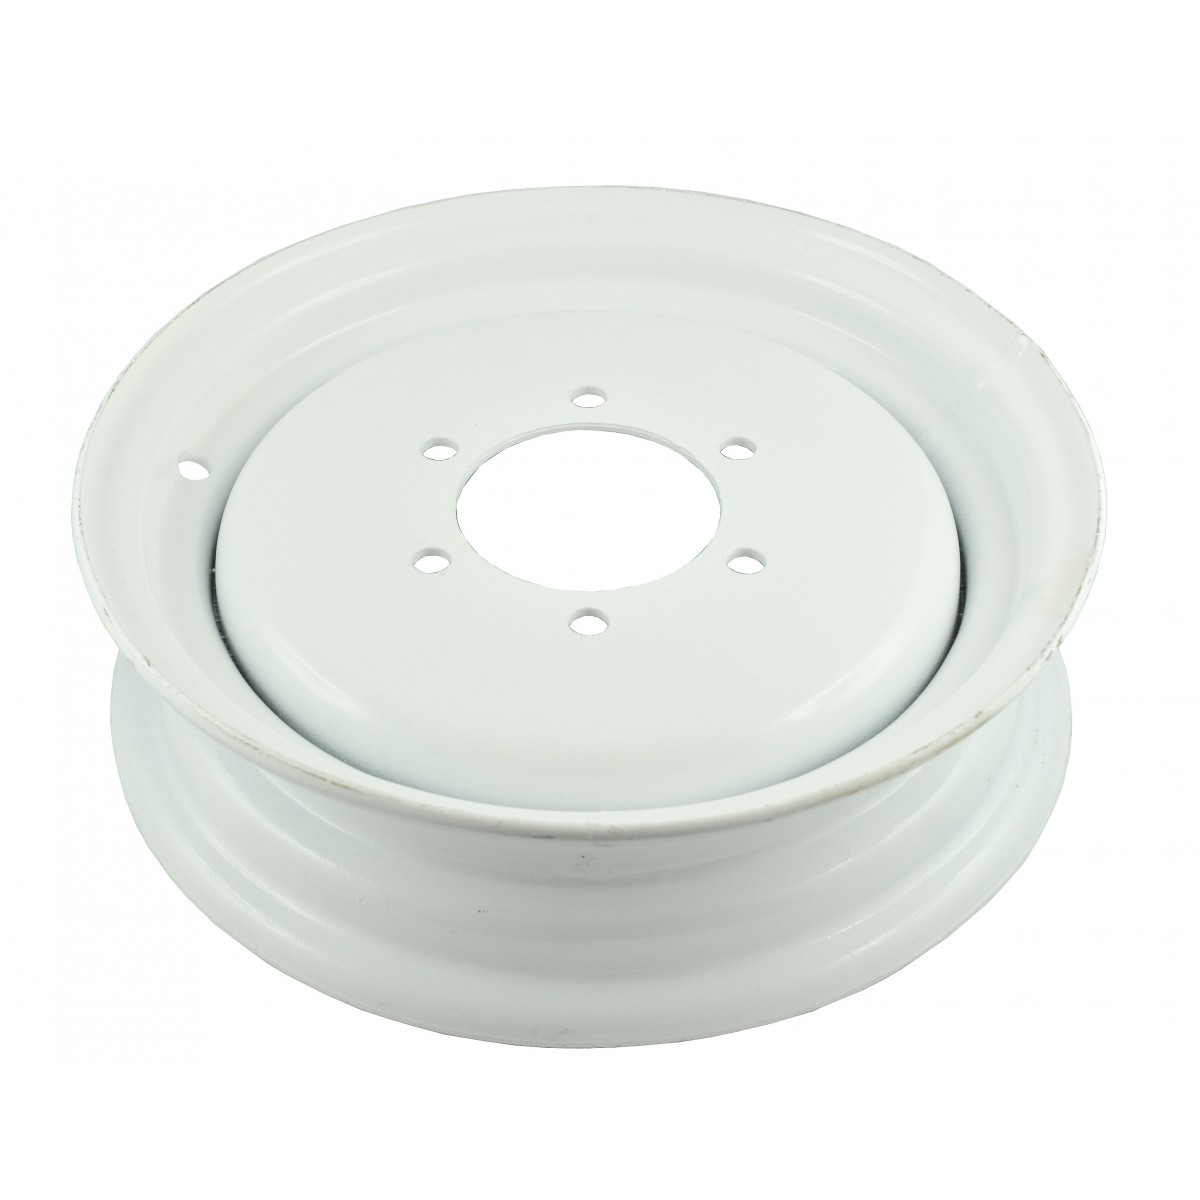 3.00-12 '(500-12) wheel with 6 holes (90 * 120)